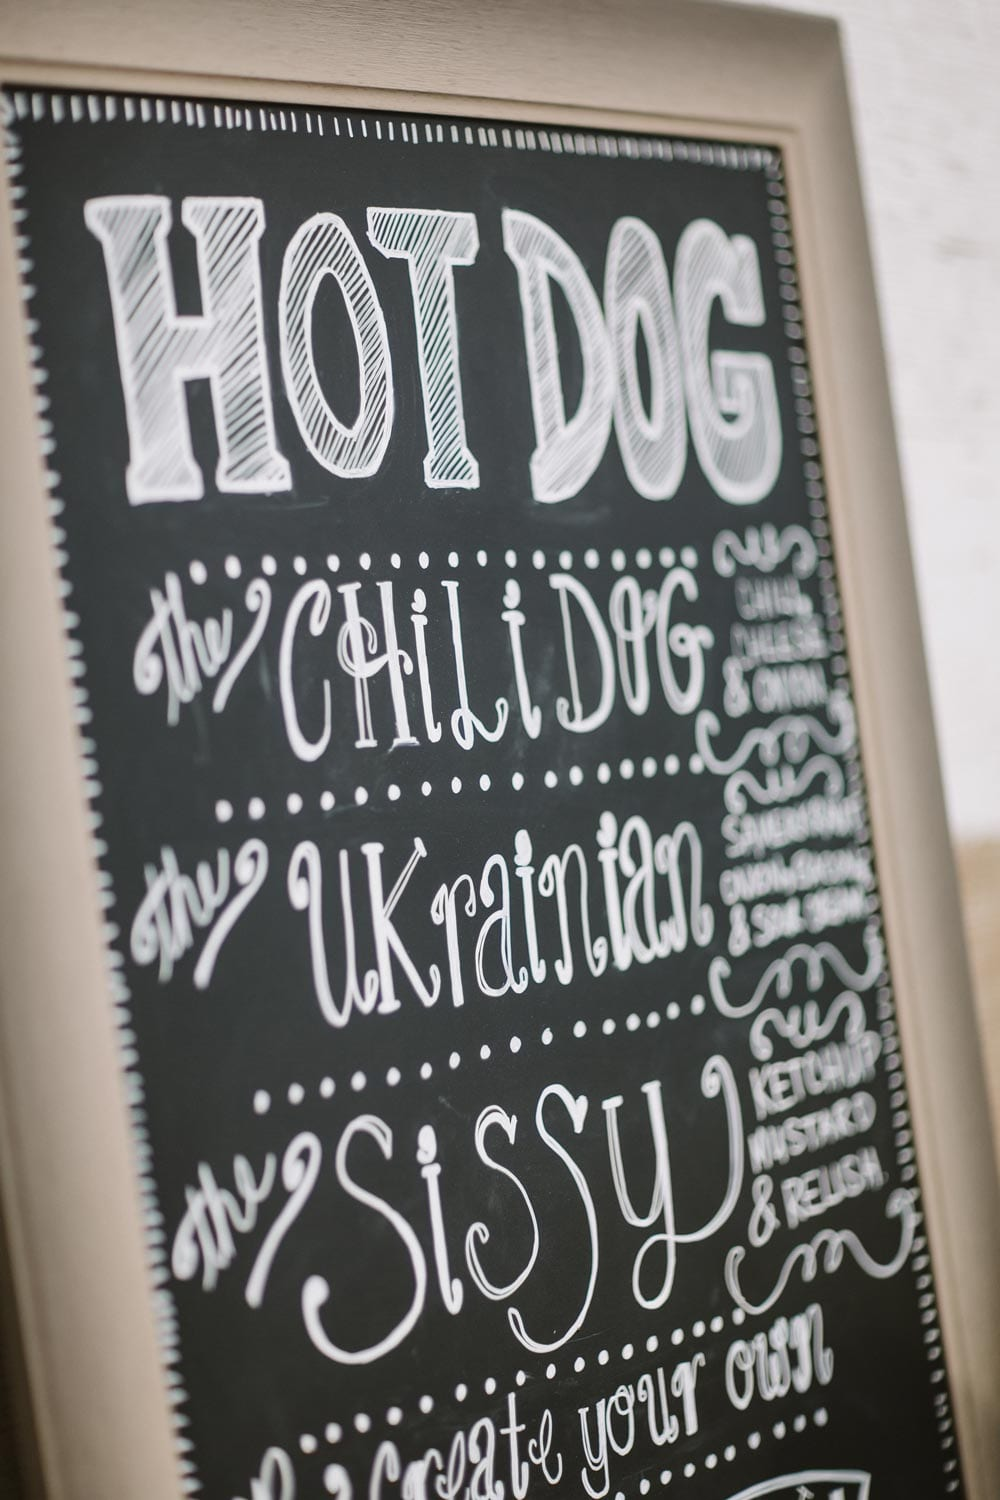 hotdog-sign-close-up